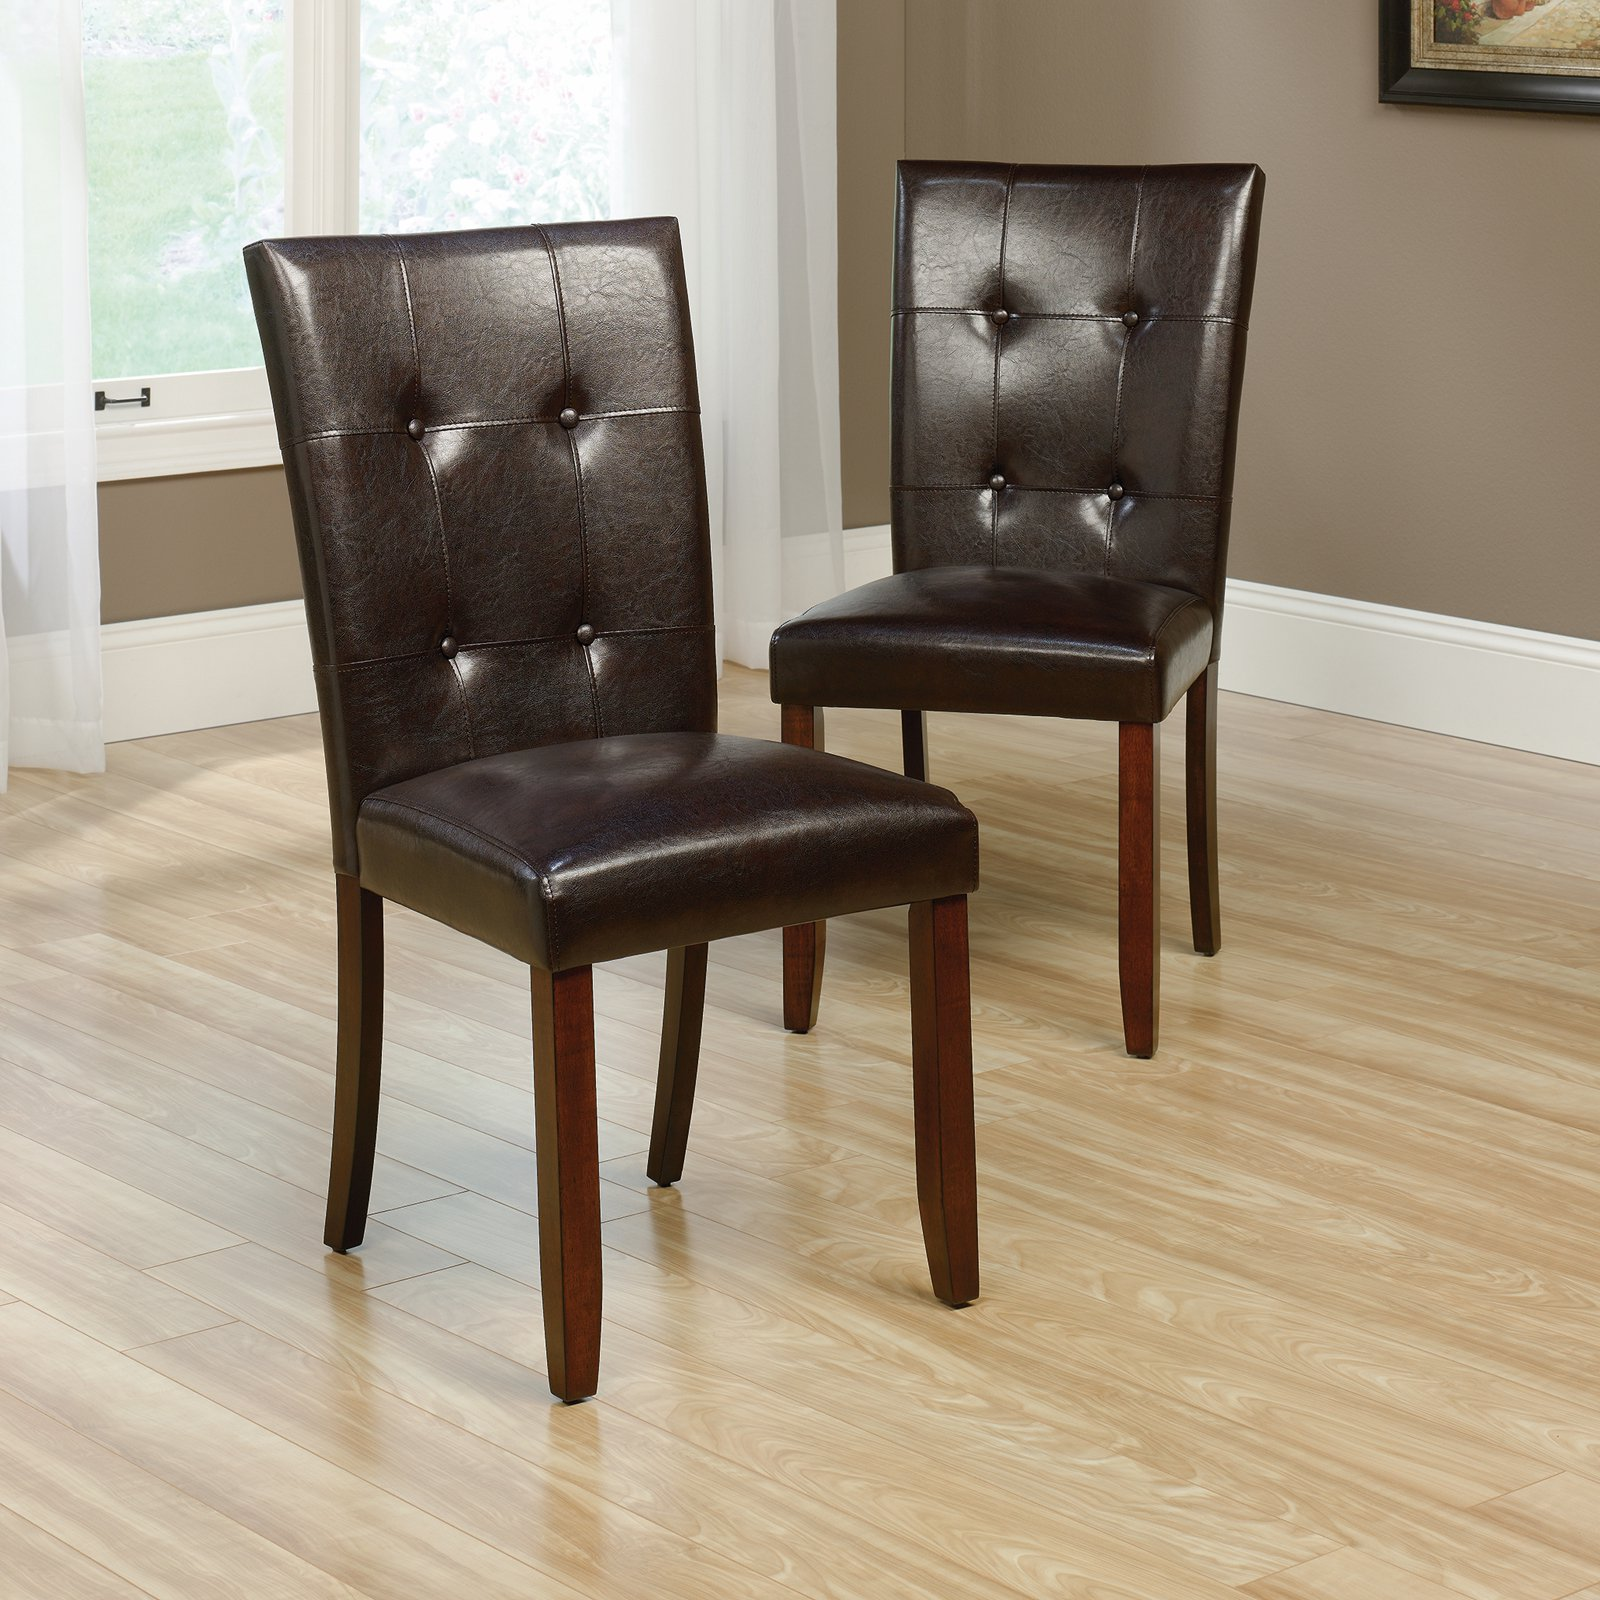 Sauder Palladia Parsons Chairs, 2 Pack, Select Cherry Finish